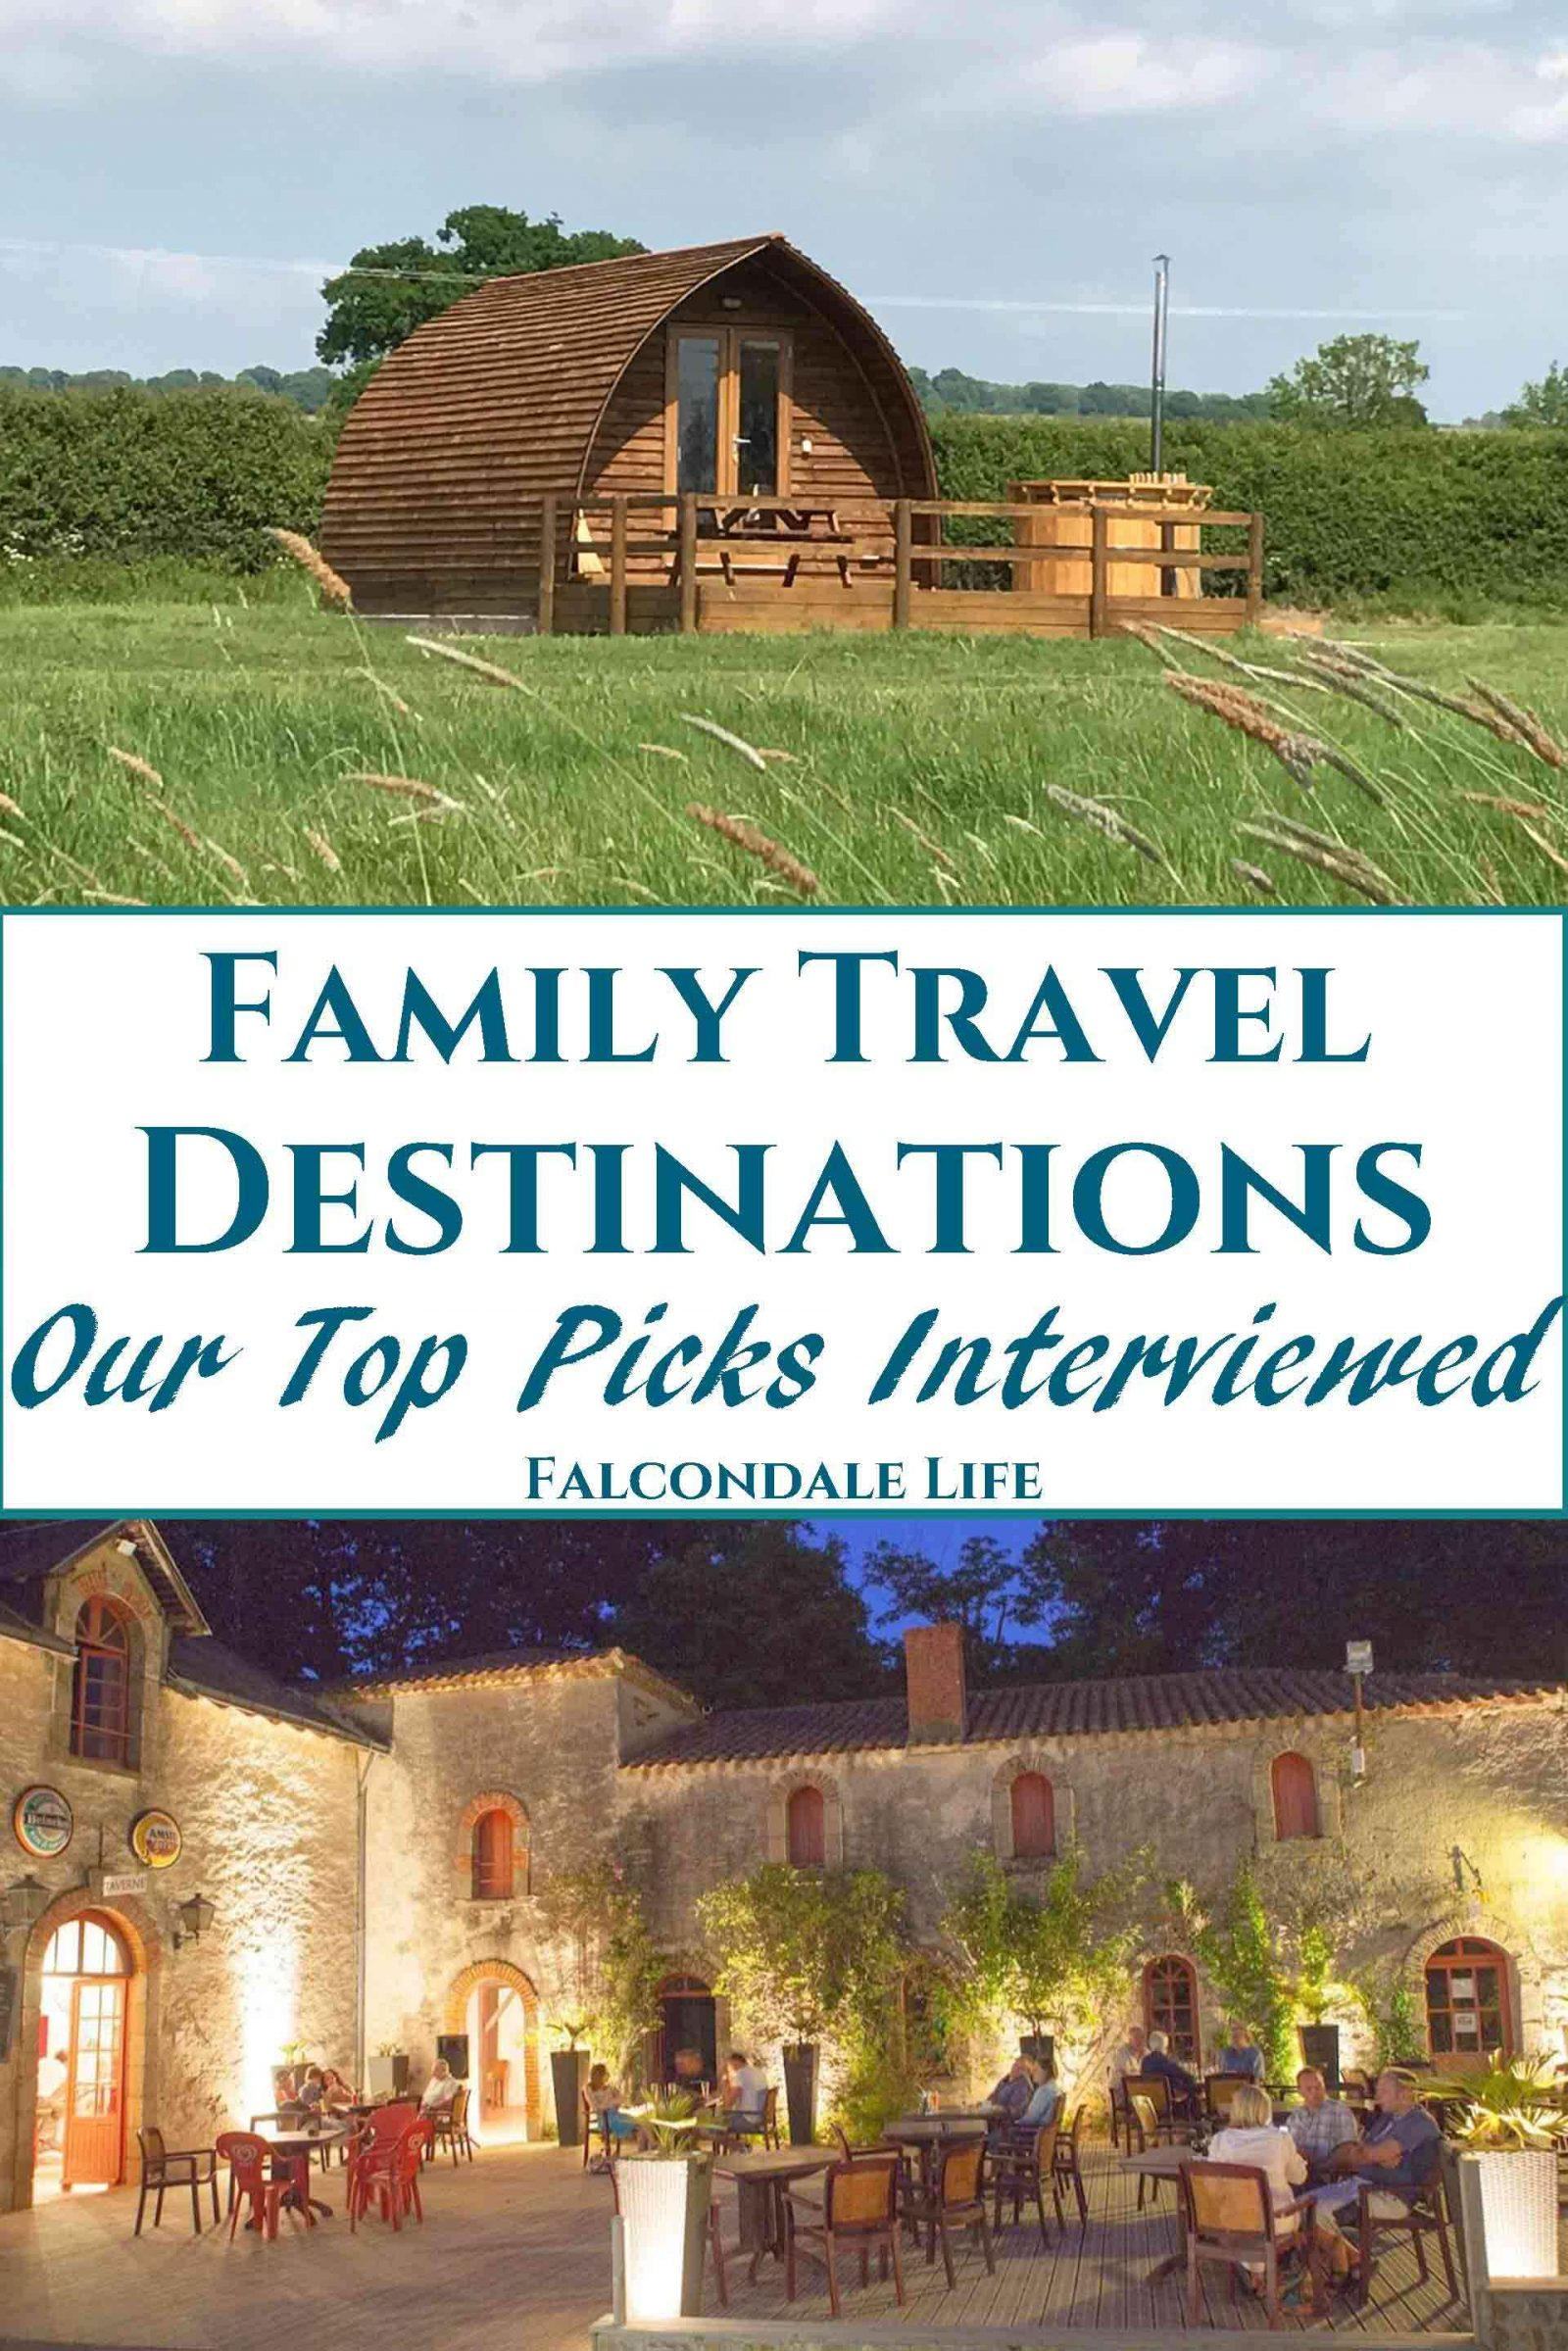 Interviews with the people behind three family travel destinations. Insights of how each family travel destination is run and their commitment to customers. Family Travel Destinations, our top picks interviewed on Falcondale Life blog. Image description: Wigwam camping pod at Evenlode and the courtyard at Chateau la Foret plus blog title.